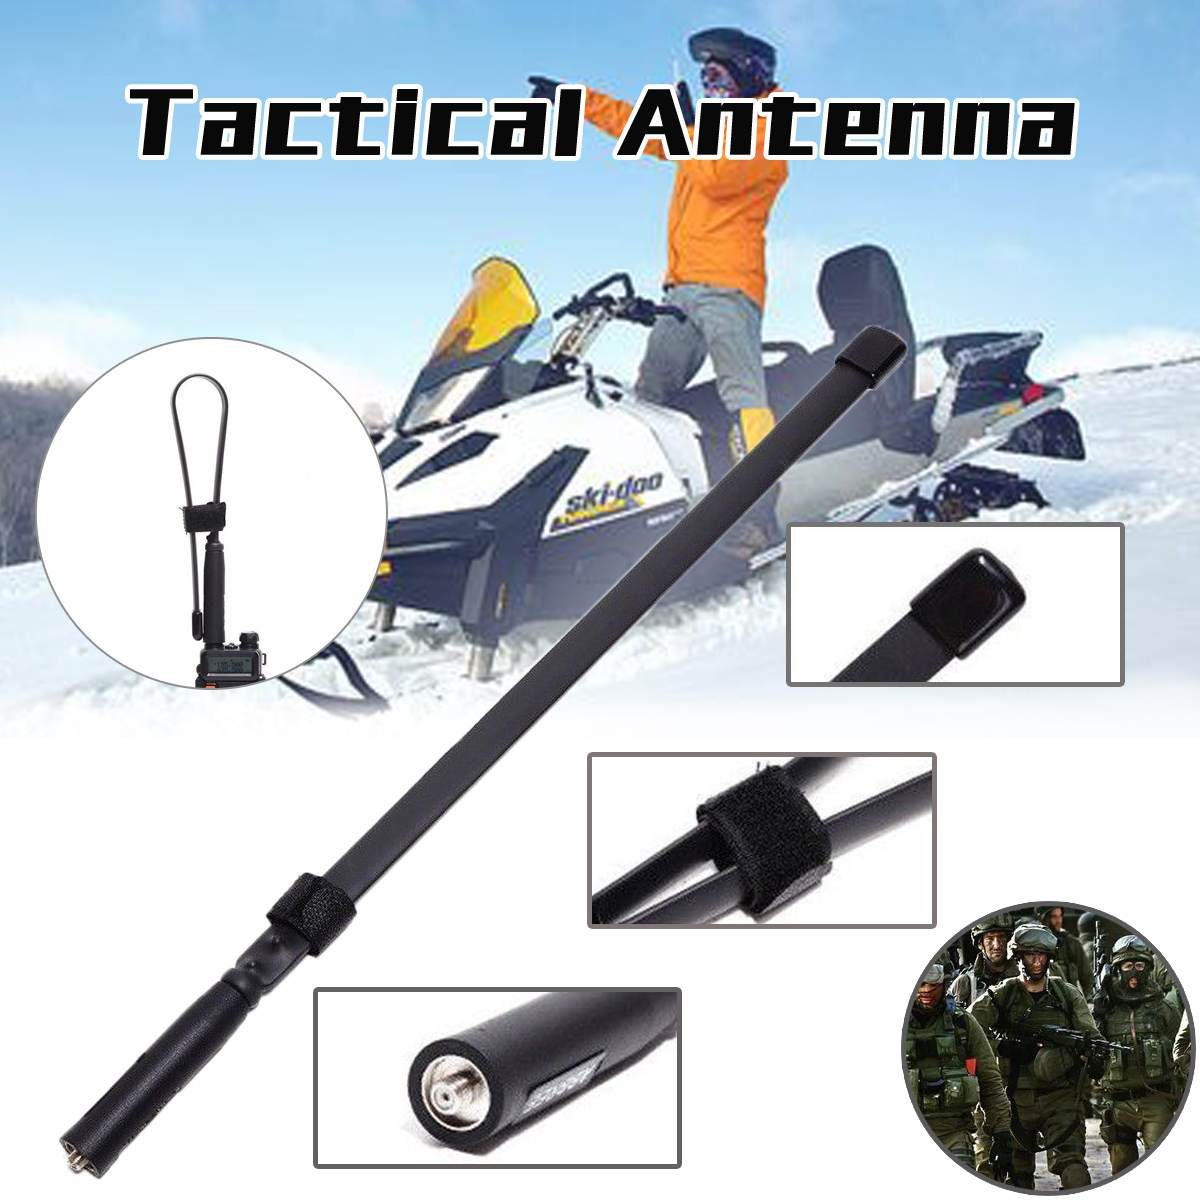 48cm Tactical Antenna AR-152A SMA-Female Dual Band VHF UHF 144/430Mhz Foldable for Walkie Talkie Foldable48cm Tactical Antenna AR-152A SMA-Female Dual Band VHF UHF 144/430Mhz Foldable for Walkie Talkie Foldable